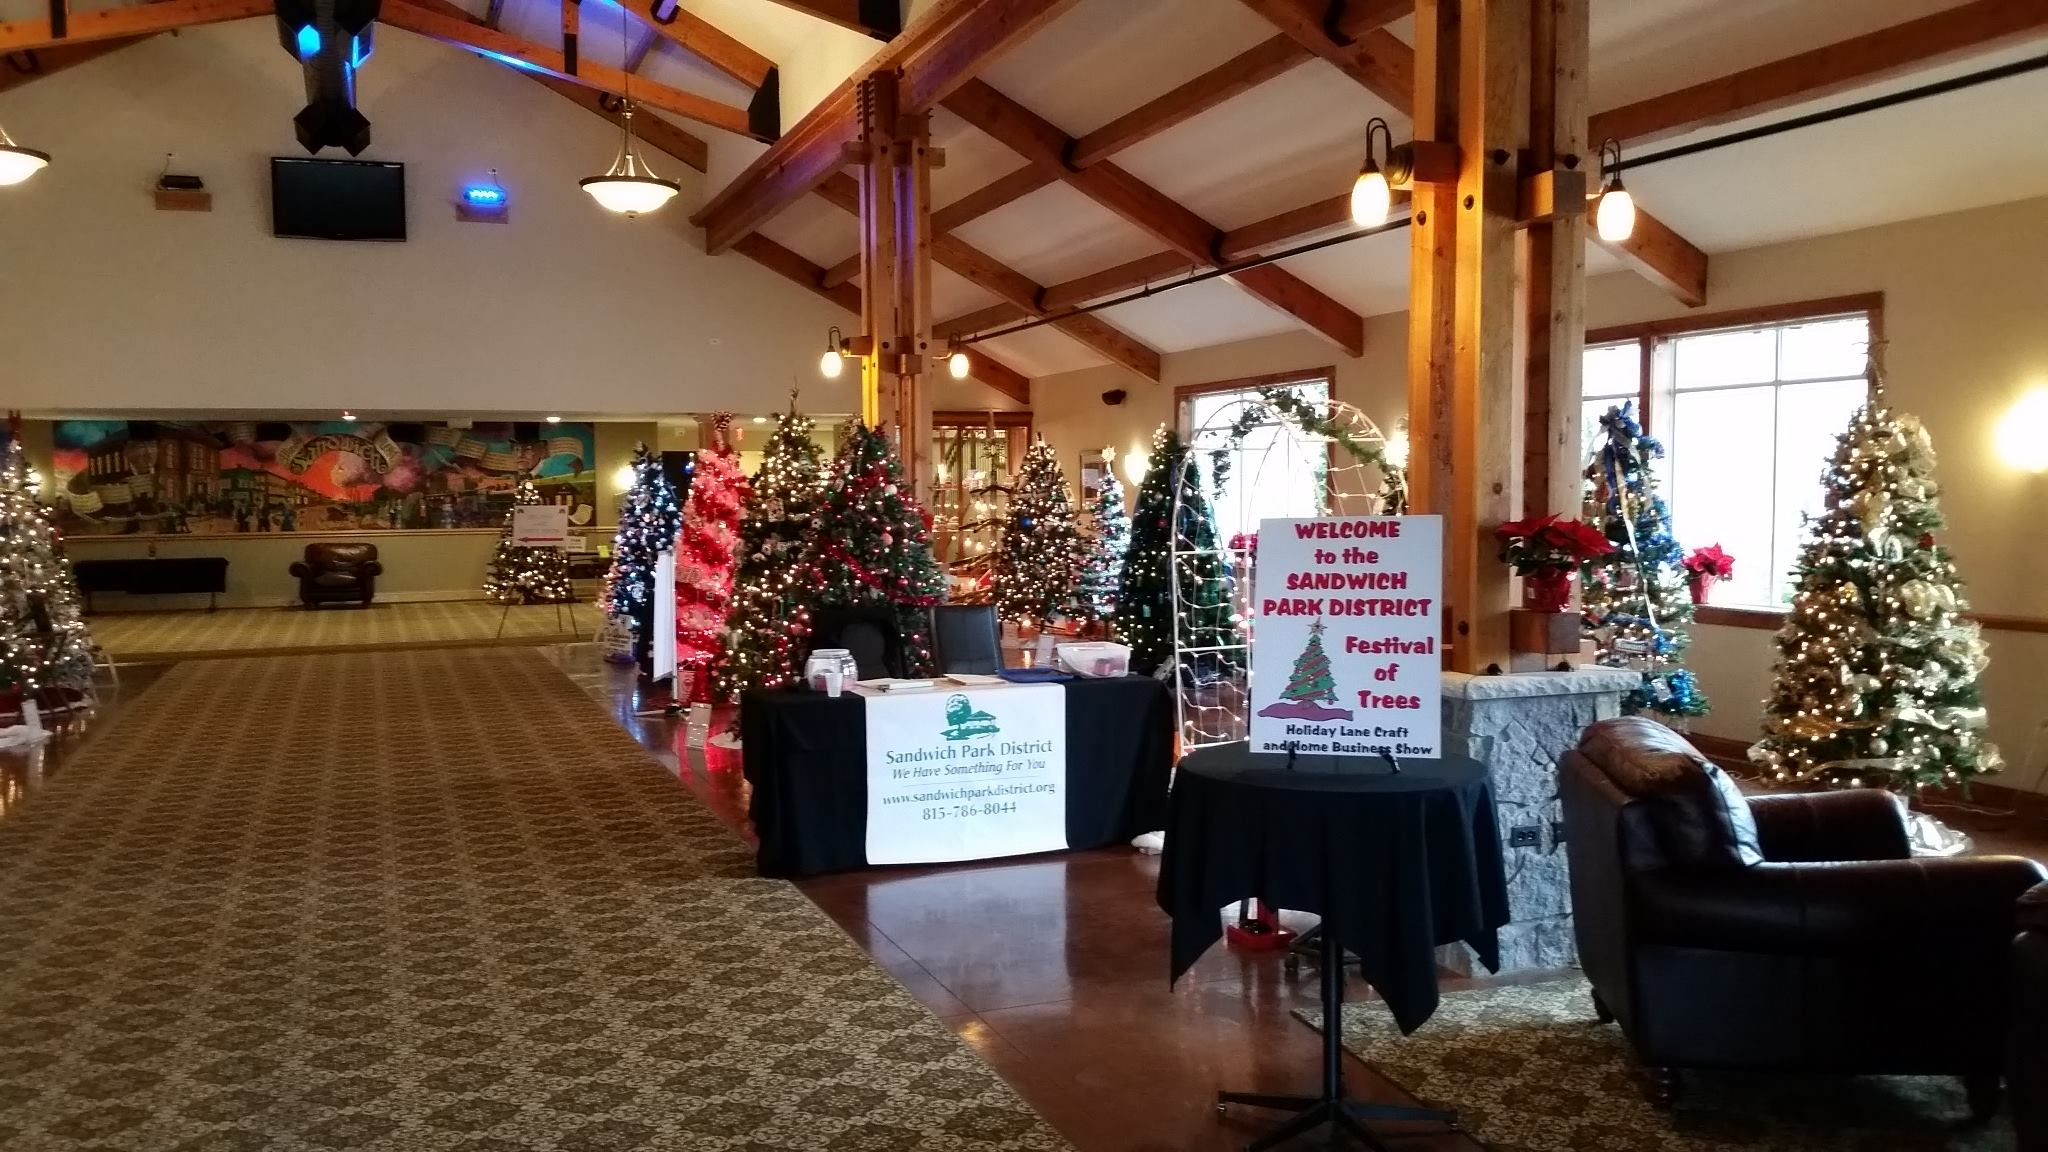 Holiday lane craft show and festival of trees this weekend for Christmas craft shows in delaware